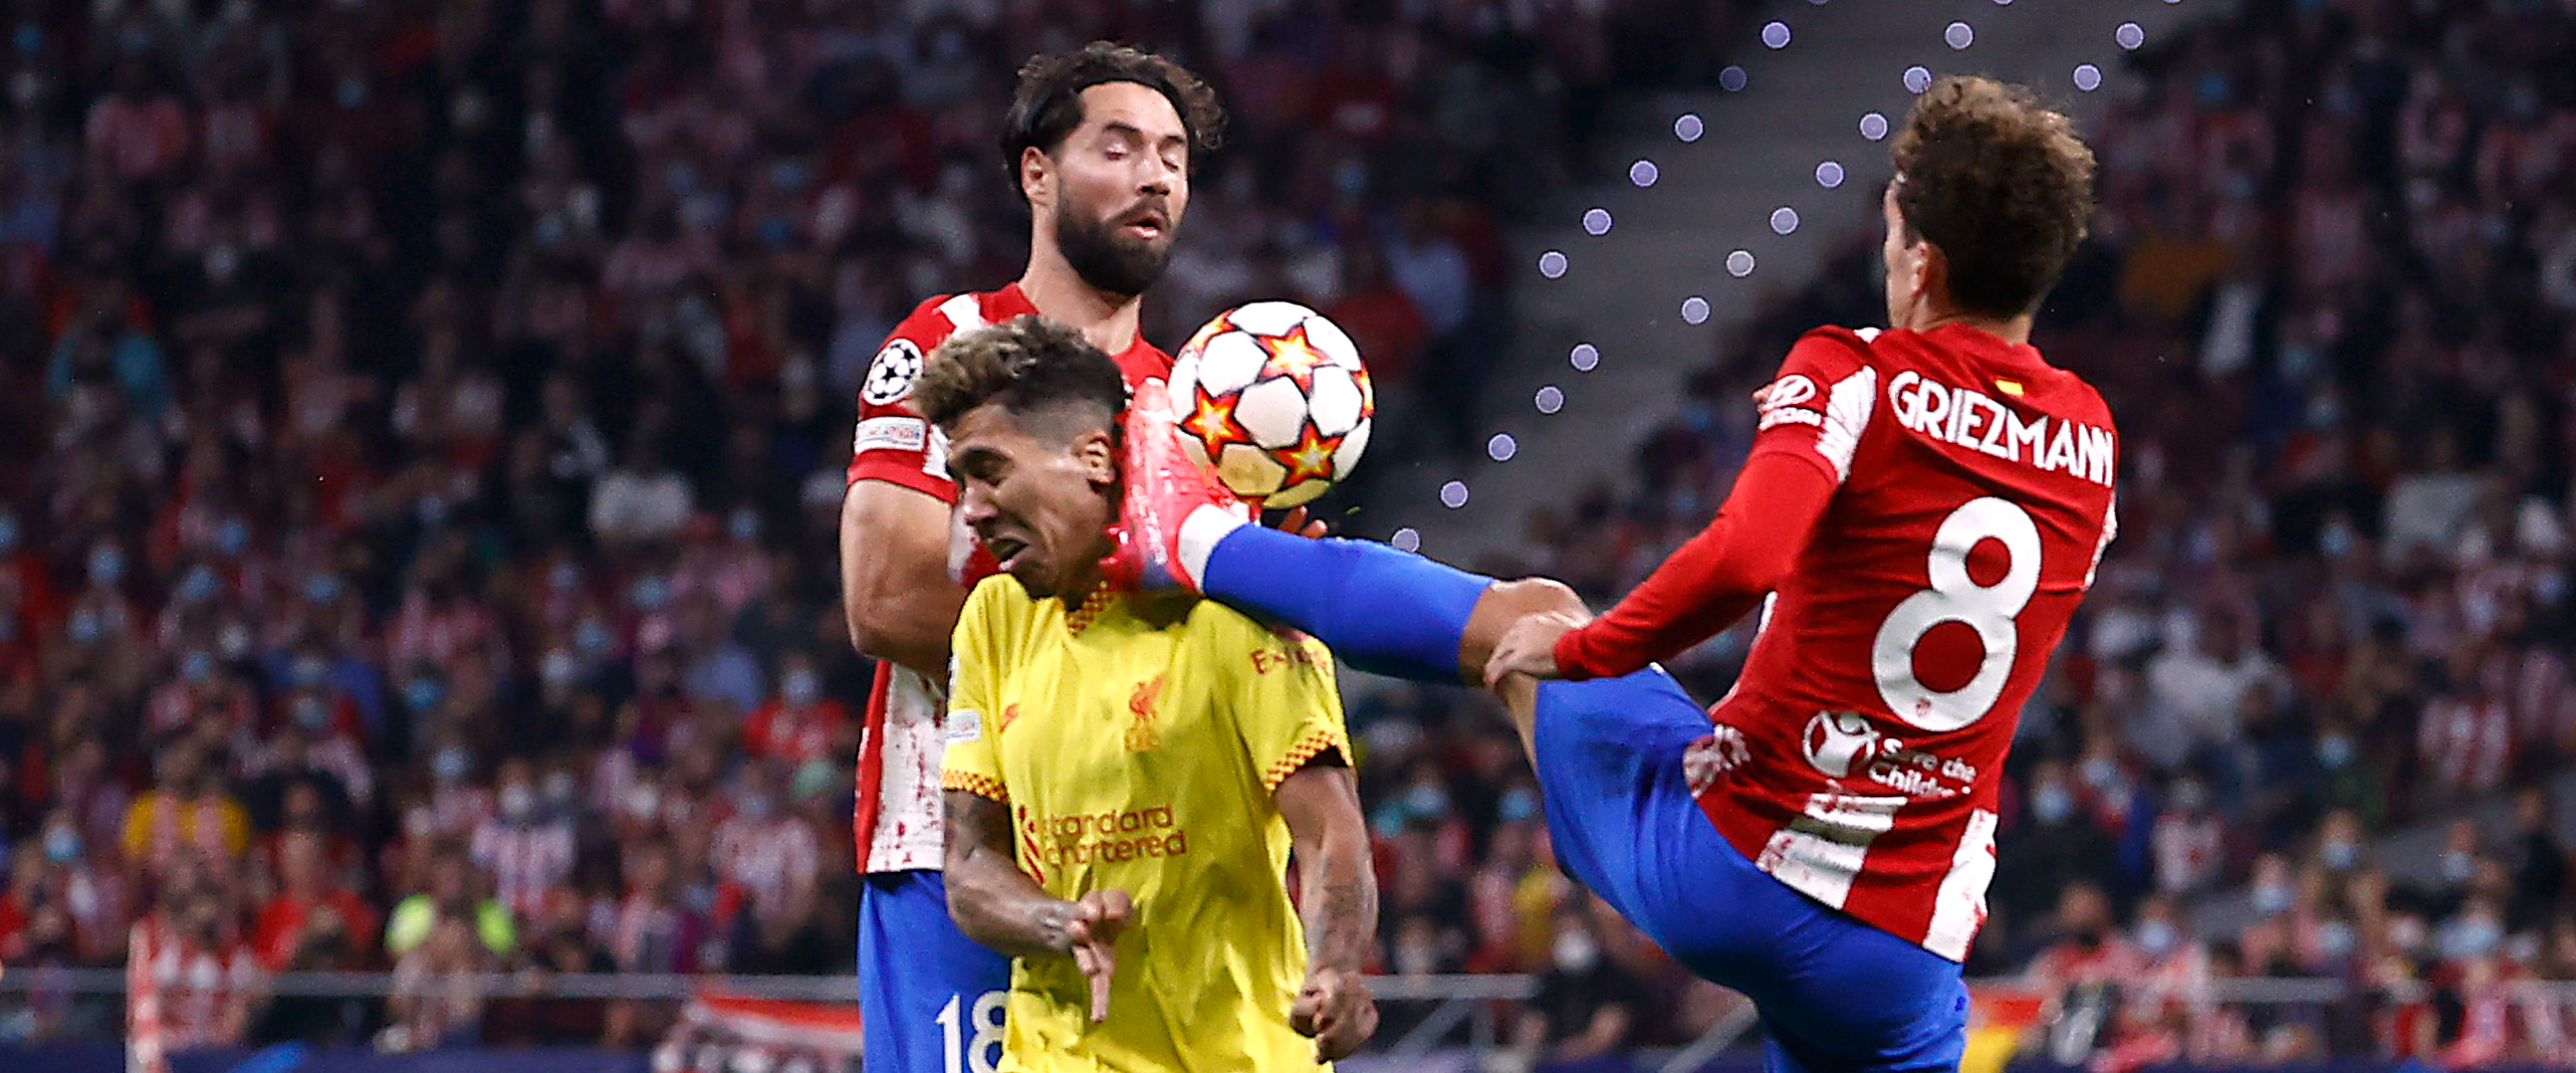 MUST-SEE: Atletico Madrid striker sent off for kicking his opponent in the face!